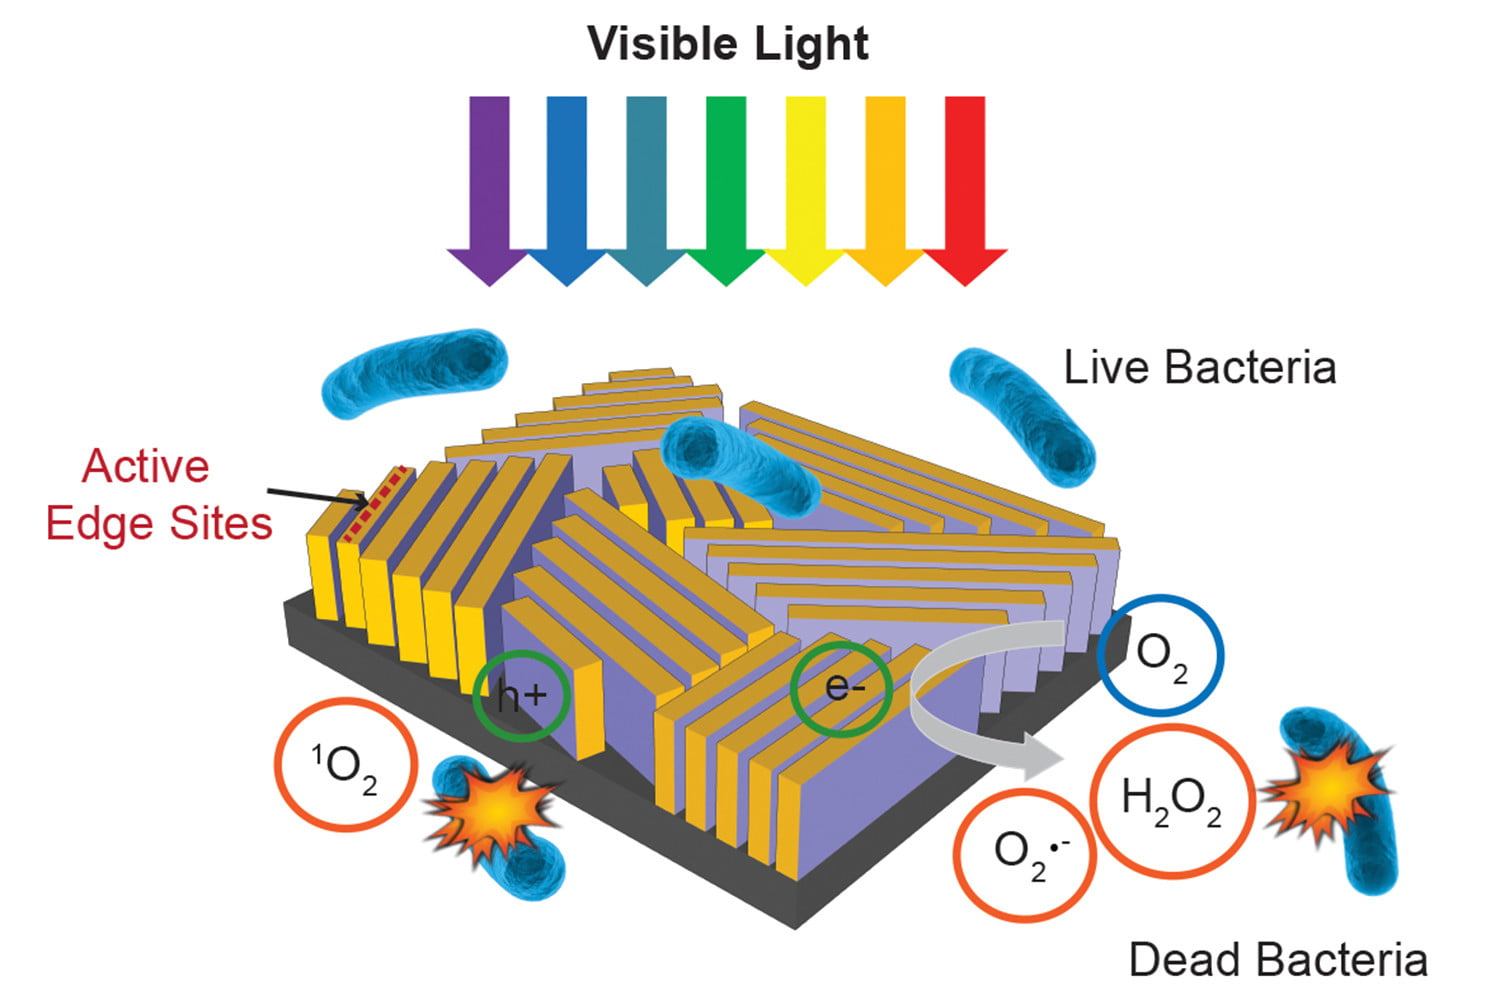 With a touch of sunlight, this tiny device kills 99.999 percent of bacteria